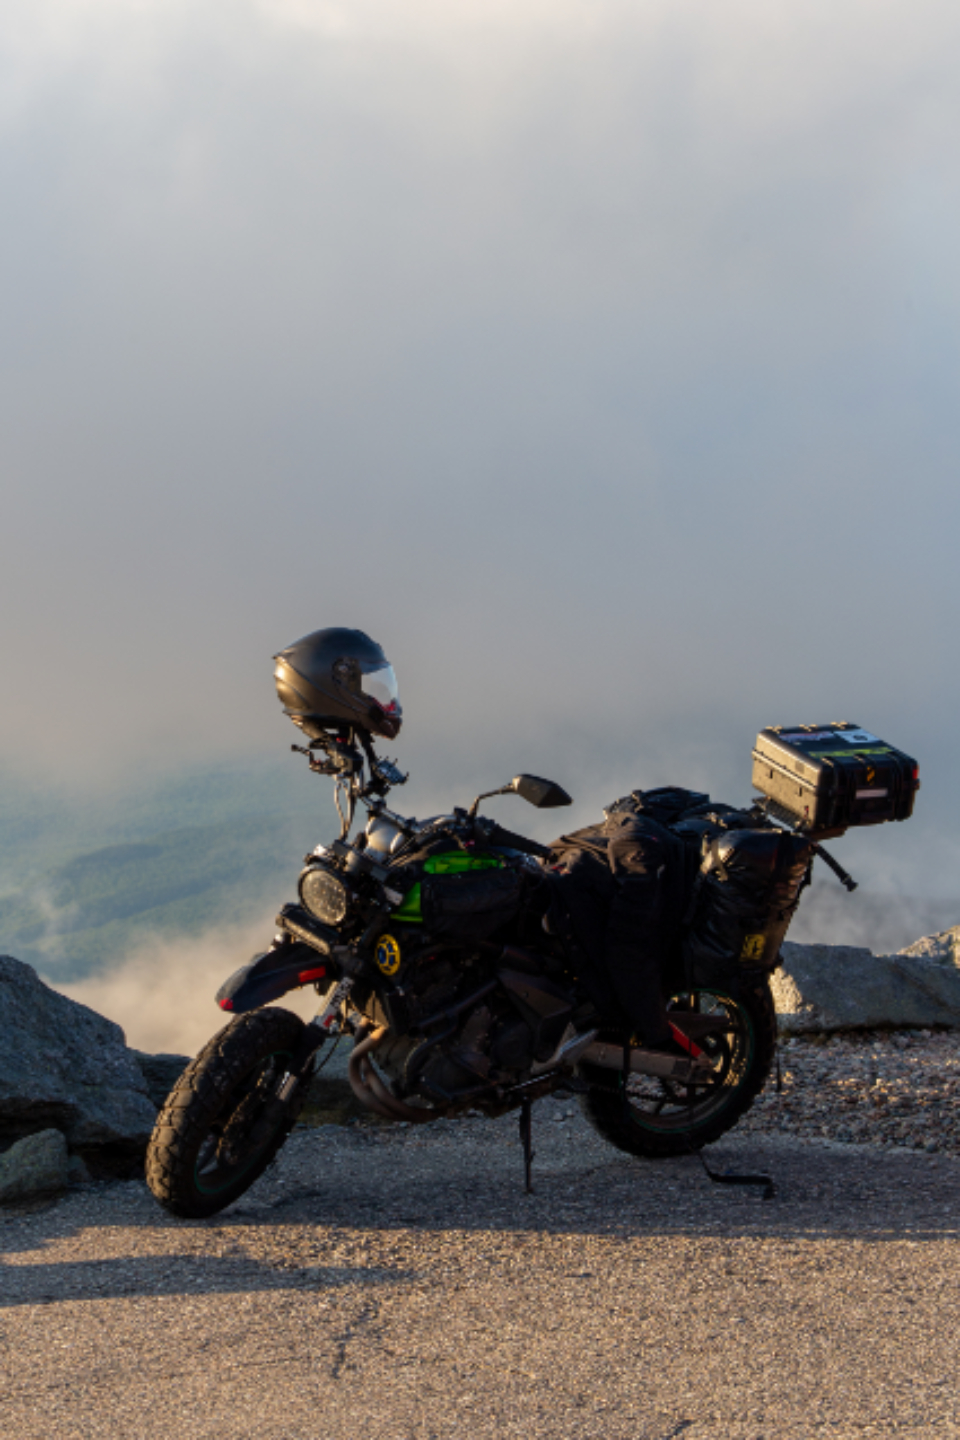 motorcycle mountain view journey ride peak helmet motobike touring tourist sky clouds parked bike scenic transport travel